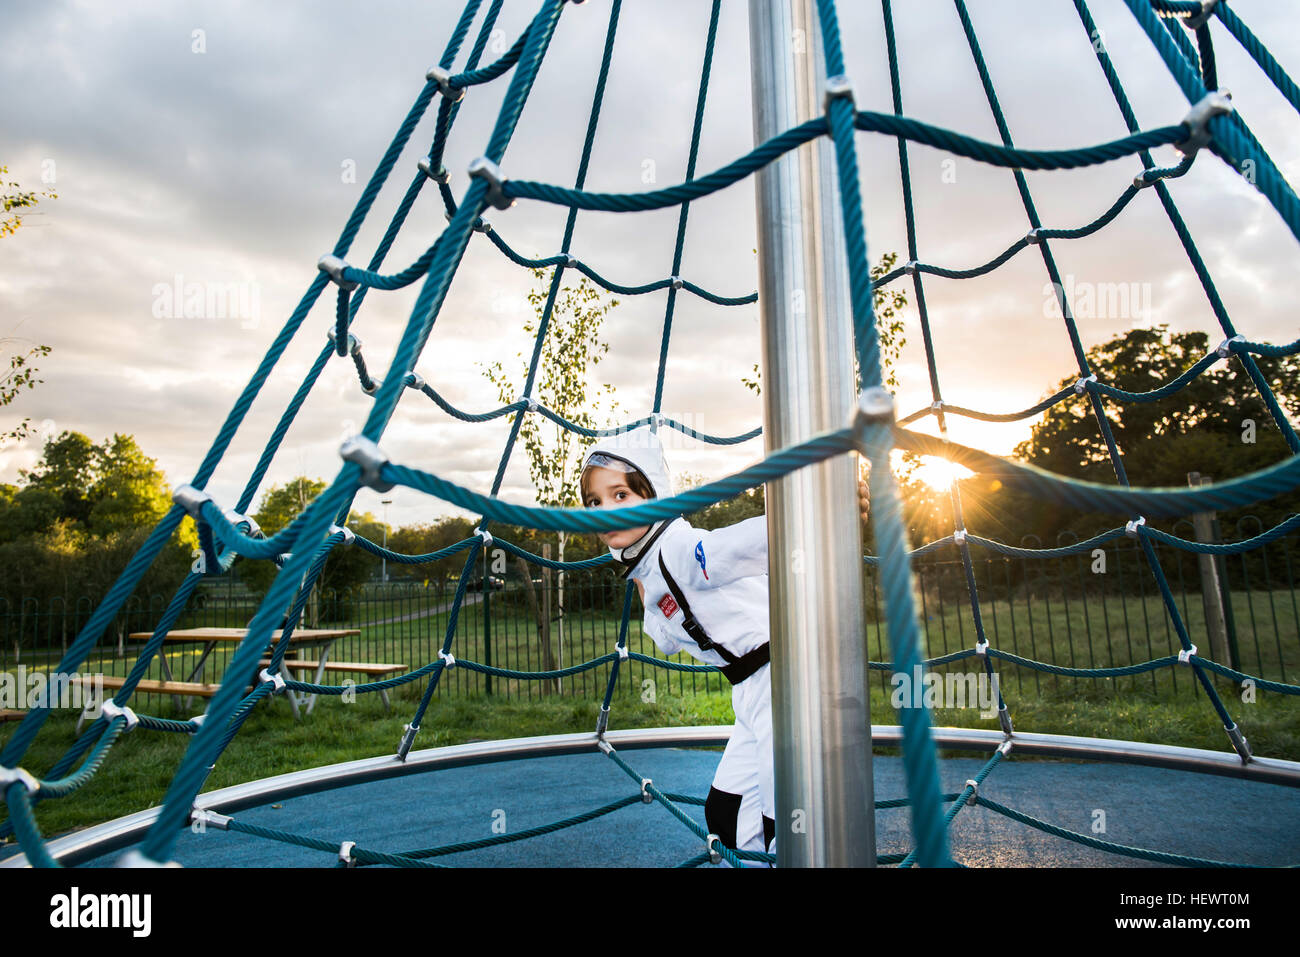 Portrait of boy in astronaut costume hiding and peering from playground climbing frame - Stock Image